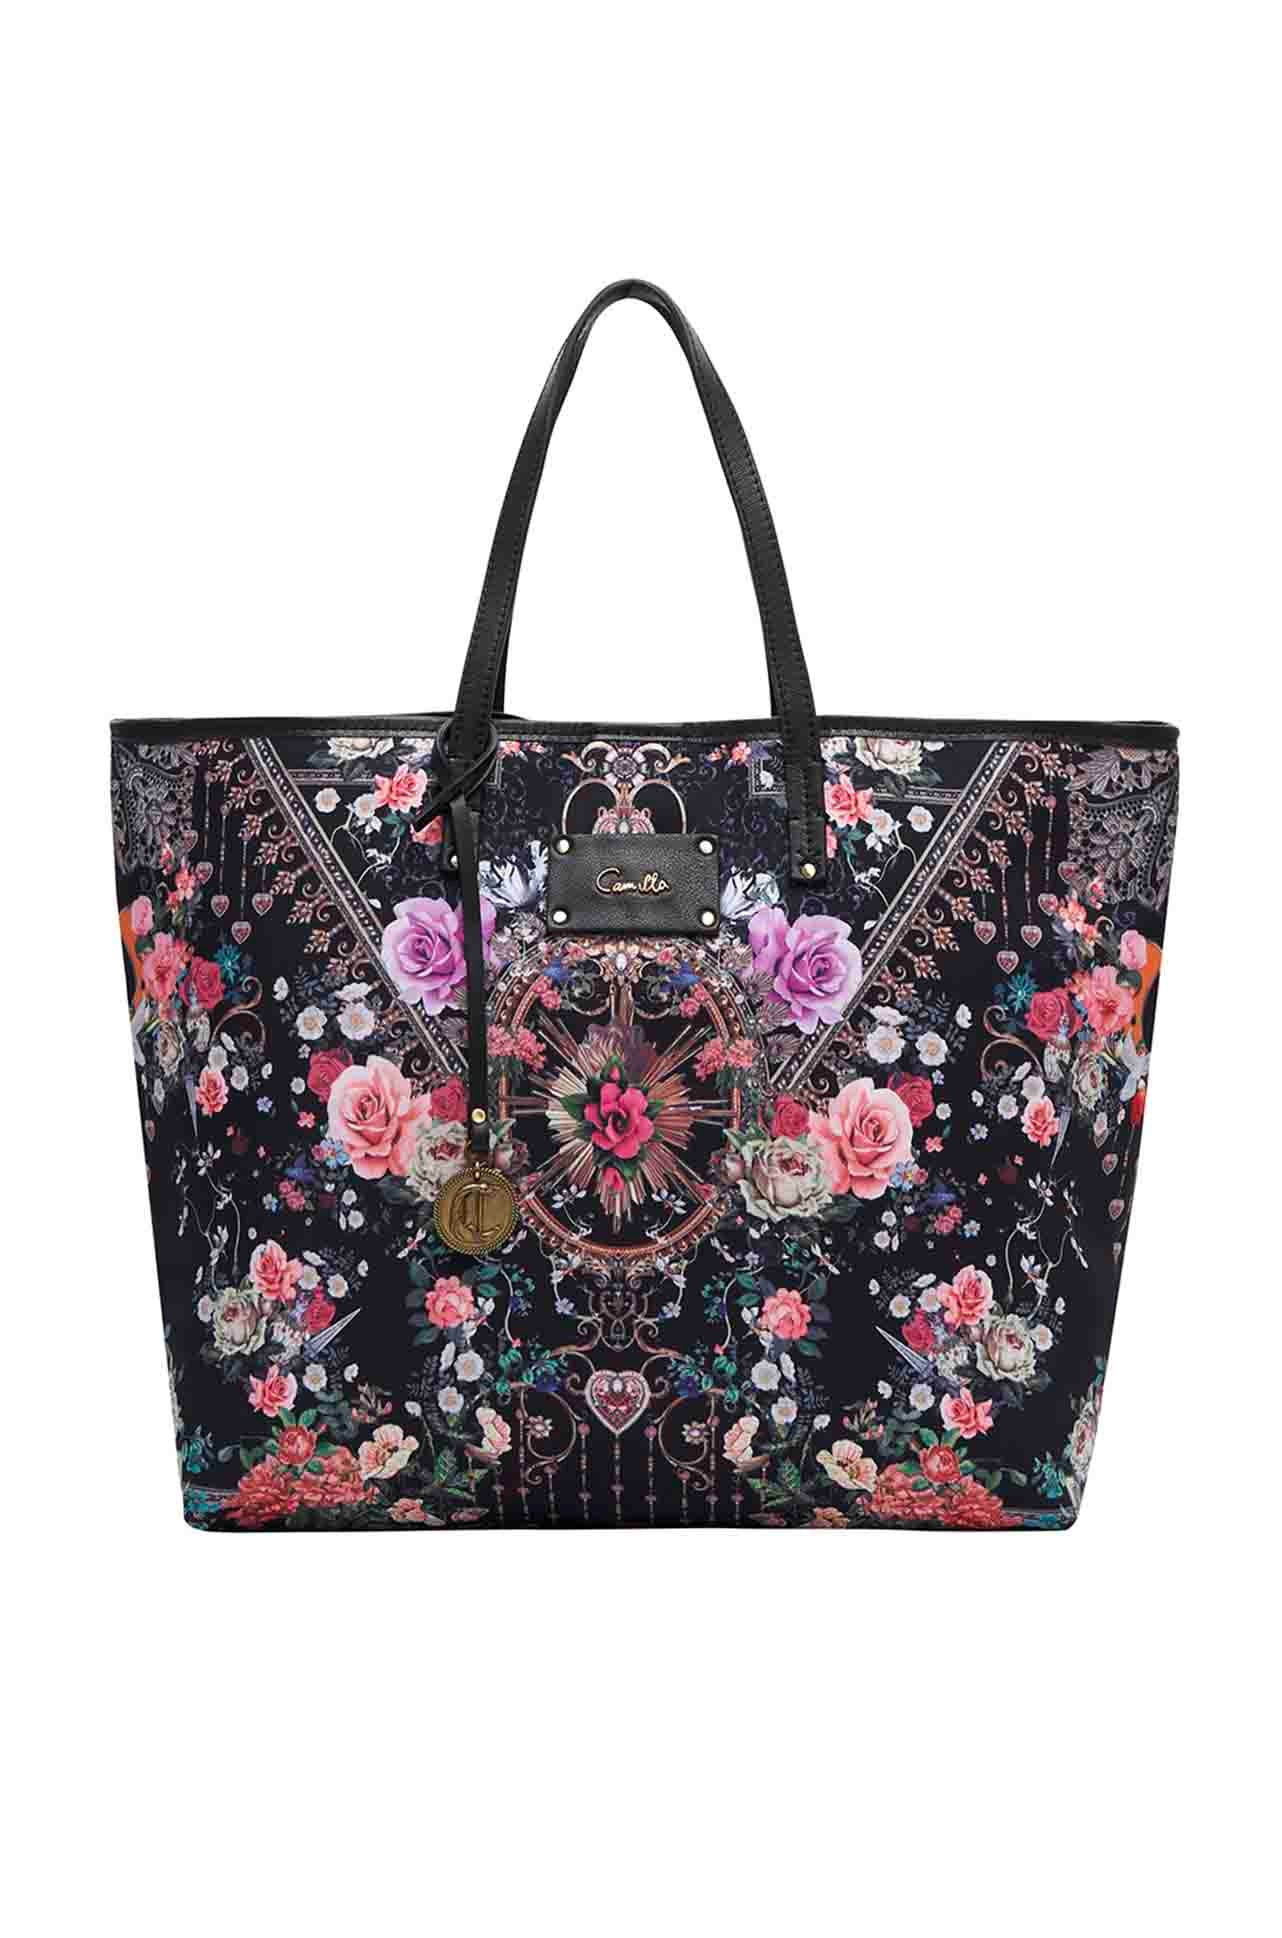 Camilla - Montagues Capulet East West Tote